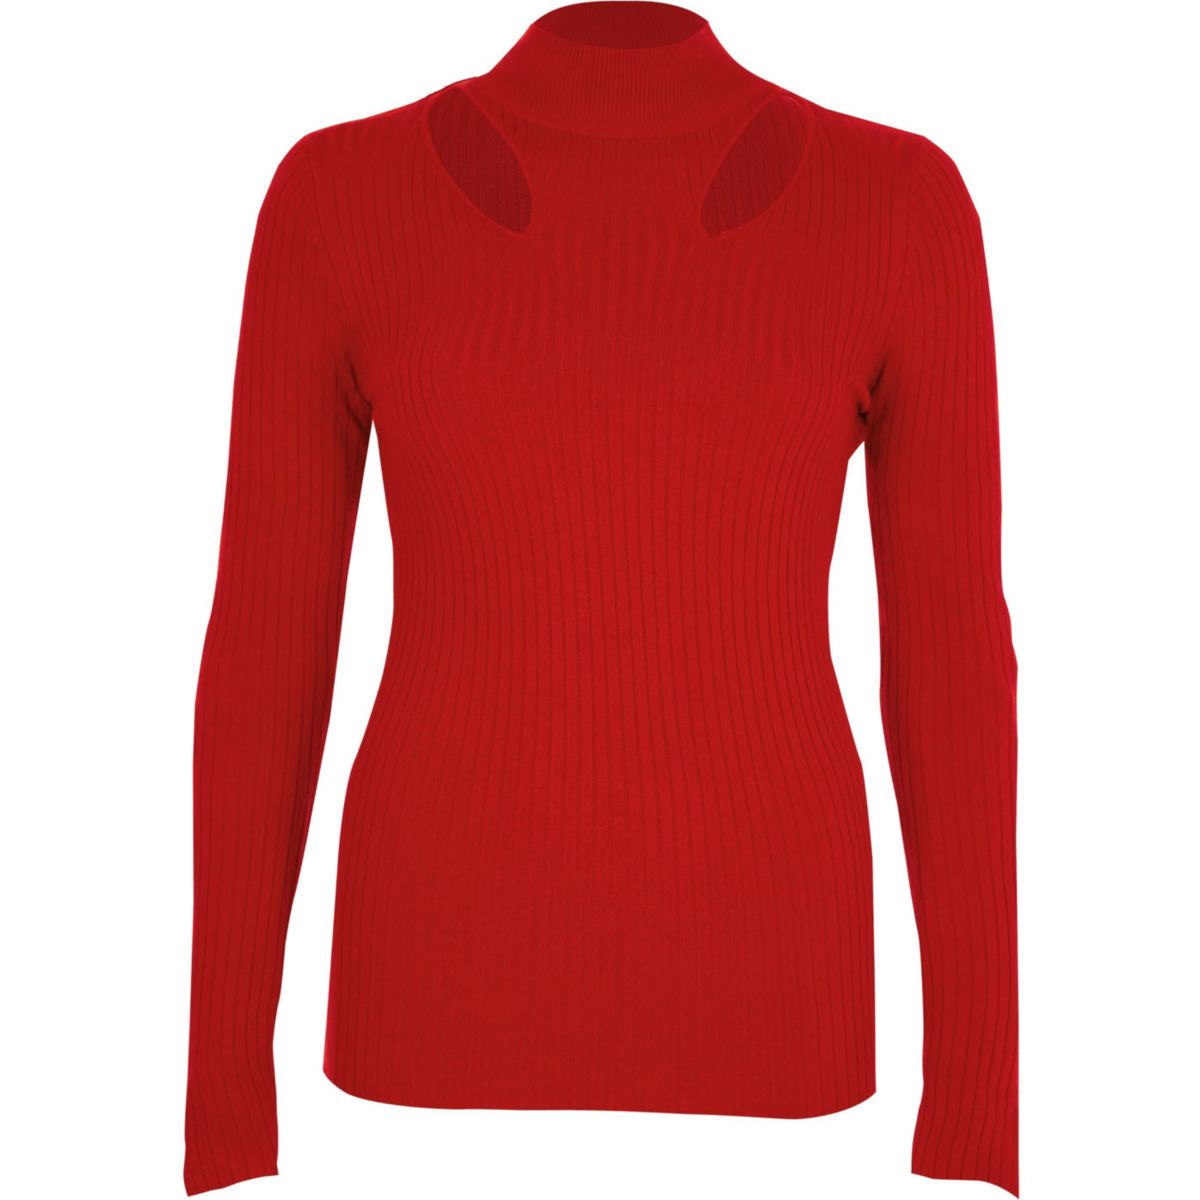 Red rib knit cut out high neck top